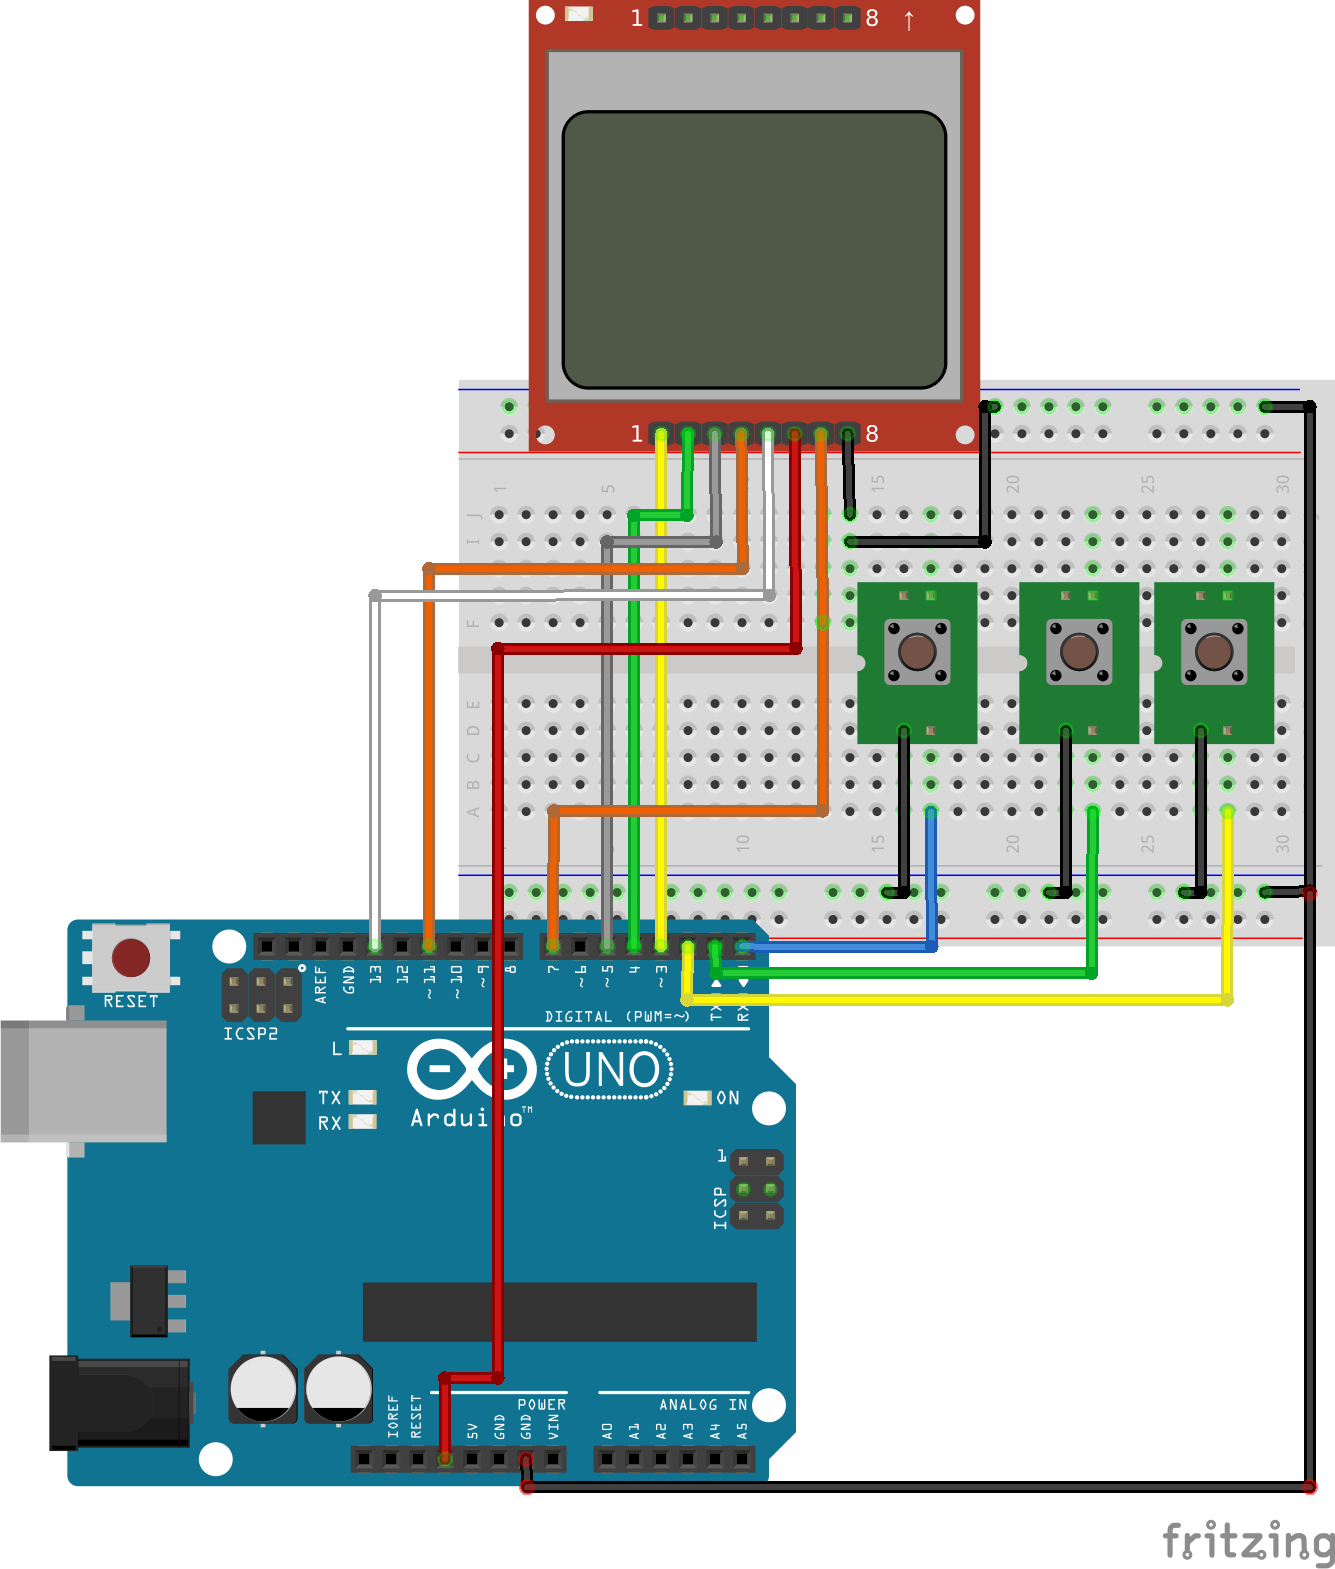 Menu On Nokia 5110 Lcd Display With Arduino Electronics Lab Arduino Arduino Projects Diy Electronics Projects Diy